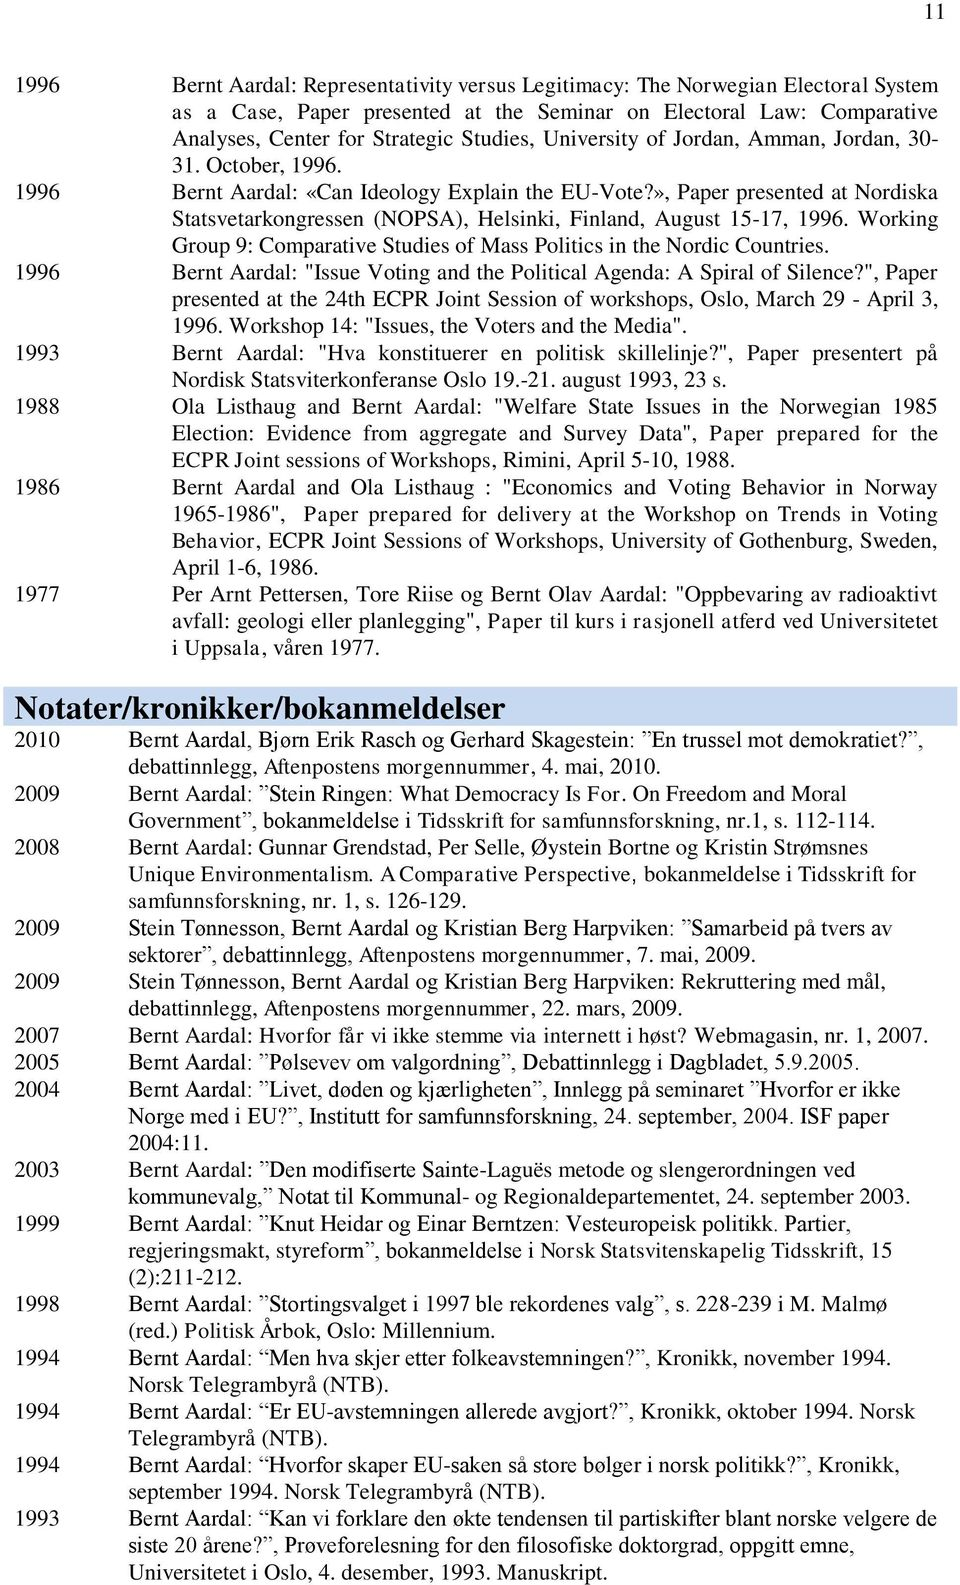 », Paper presented at Nordiska Statsvetarkongressen (NOPSA), Helsinki, Finland, August 15-17, 1996. Working Group 9: Comparative Studies of Mass Politics in the Nordic Countries.